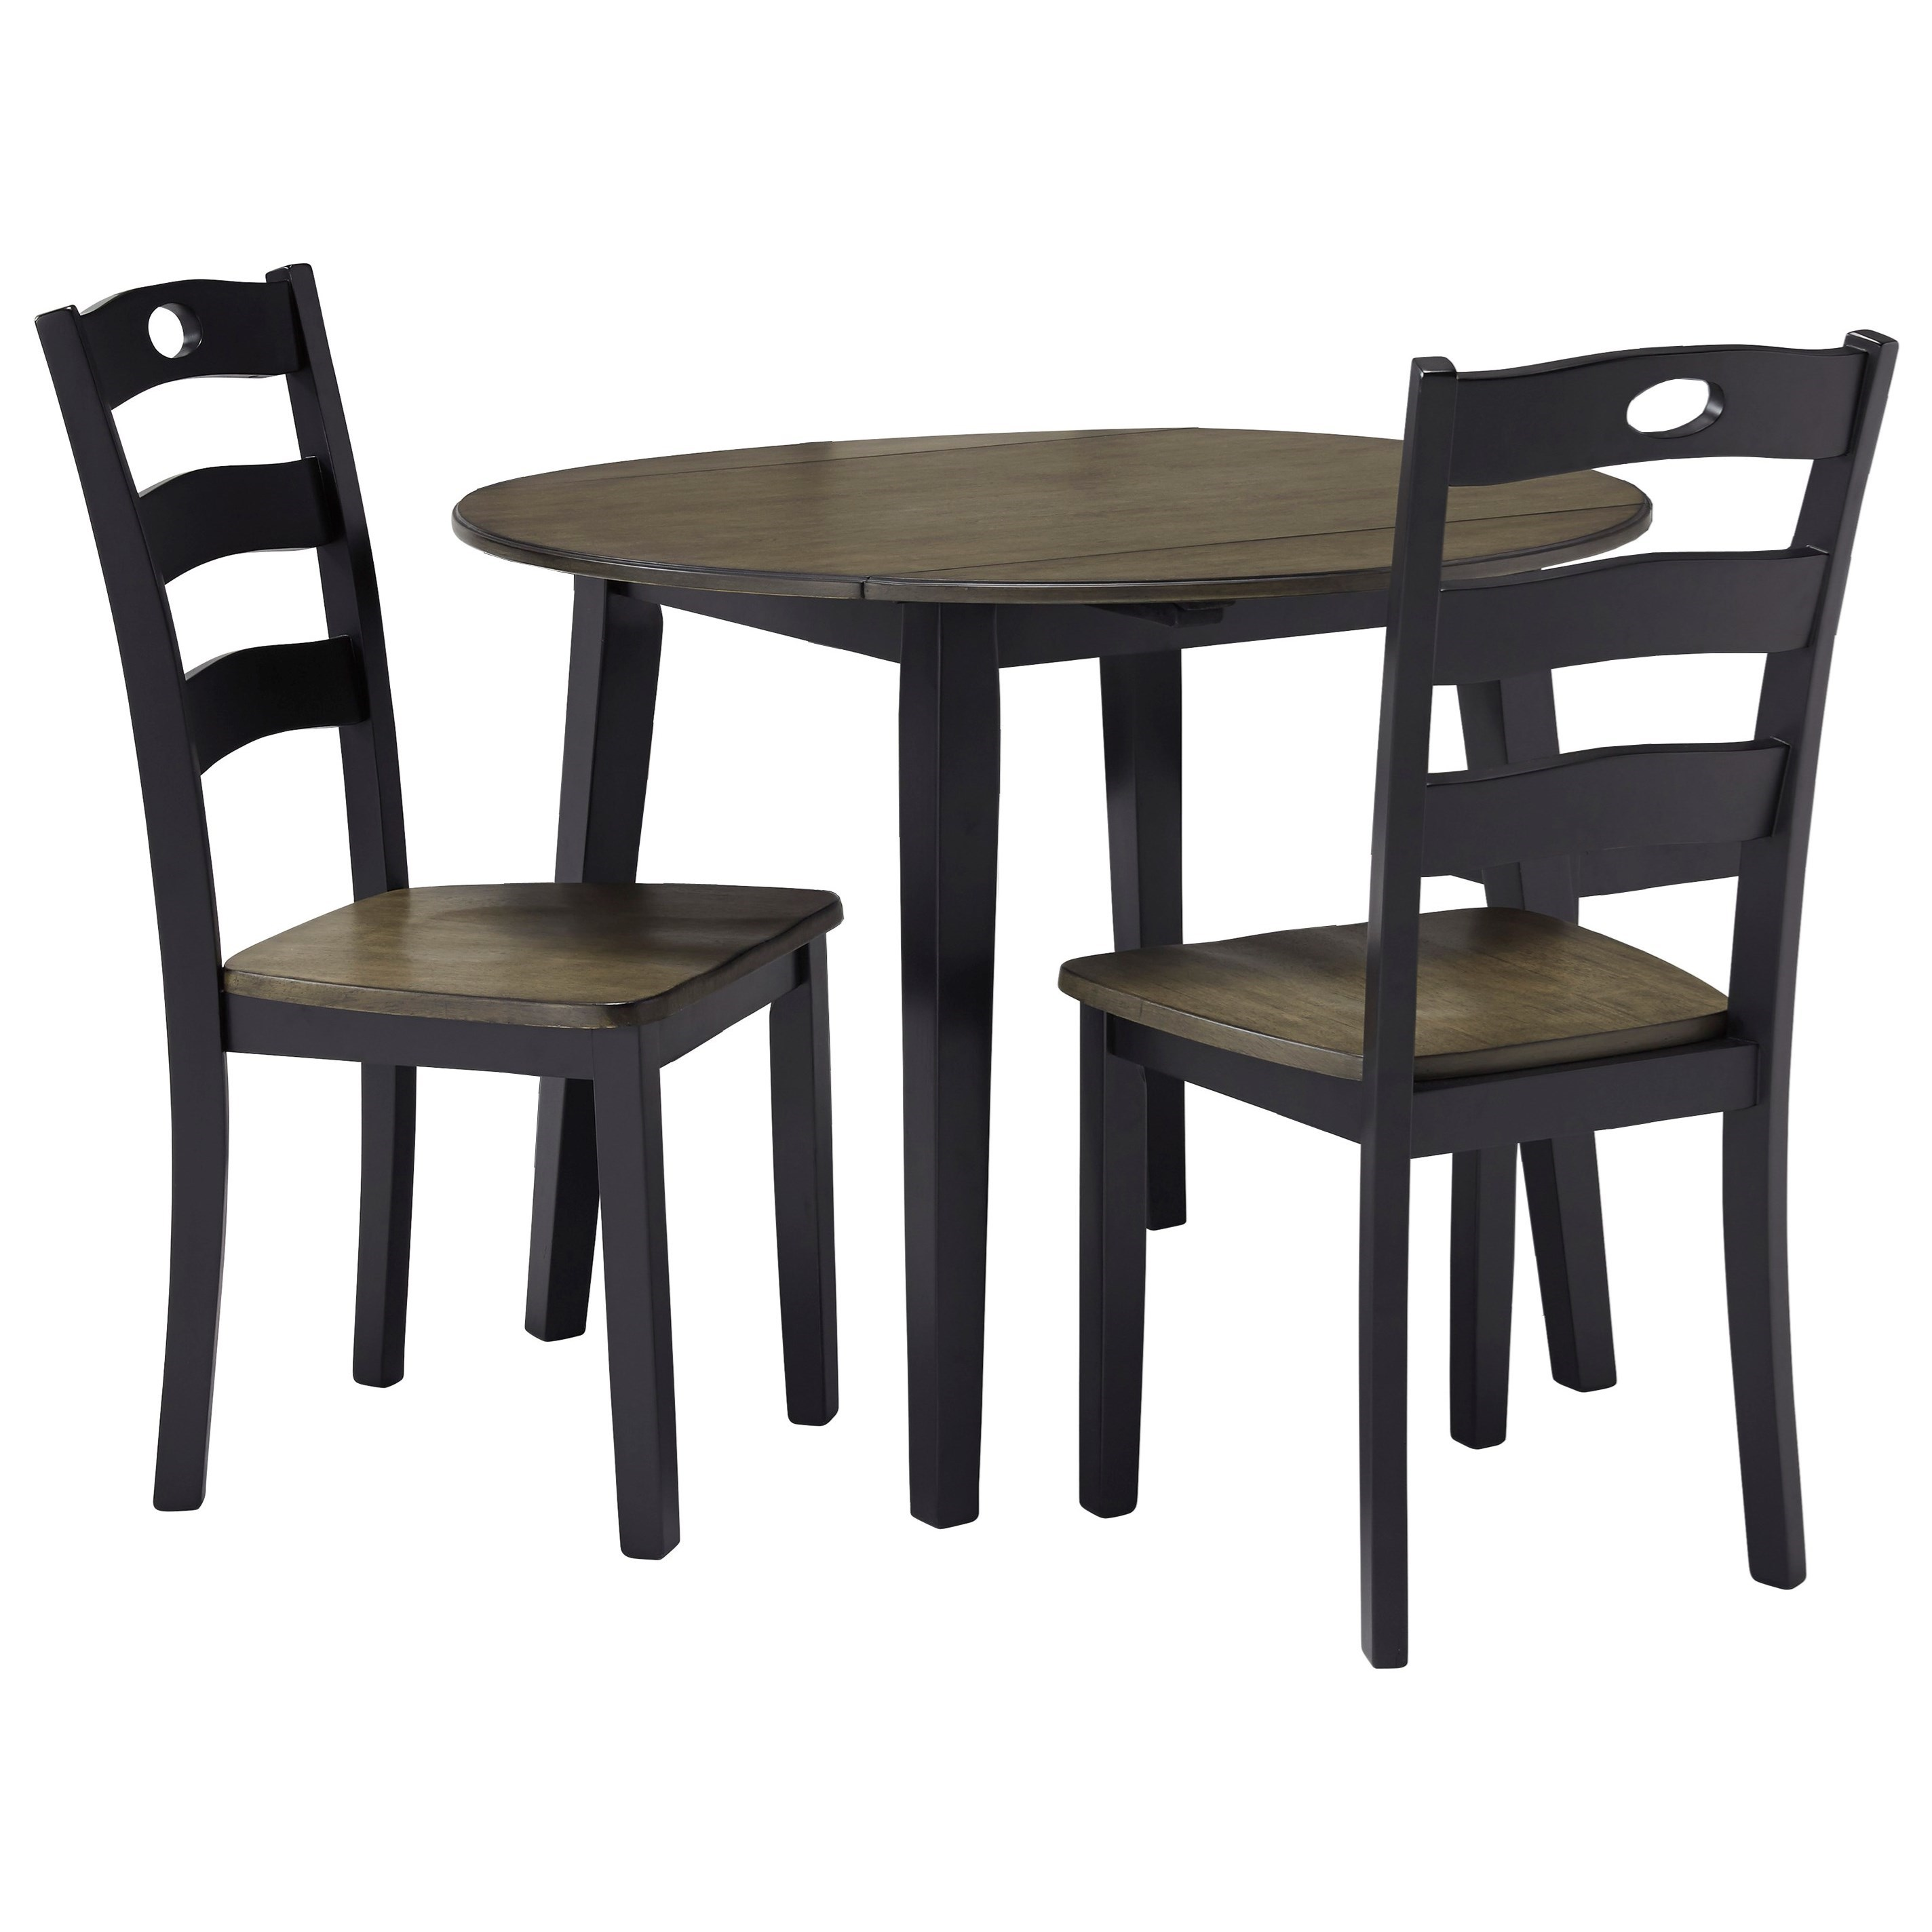 Froshburg 3-Piece Round Drop Leaf Table Set by Signature Design by Ashley at Catalog Outlet